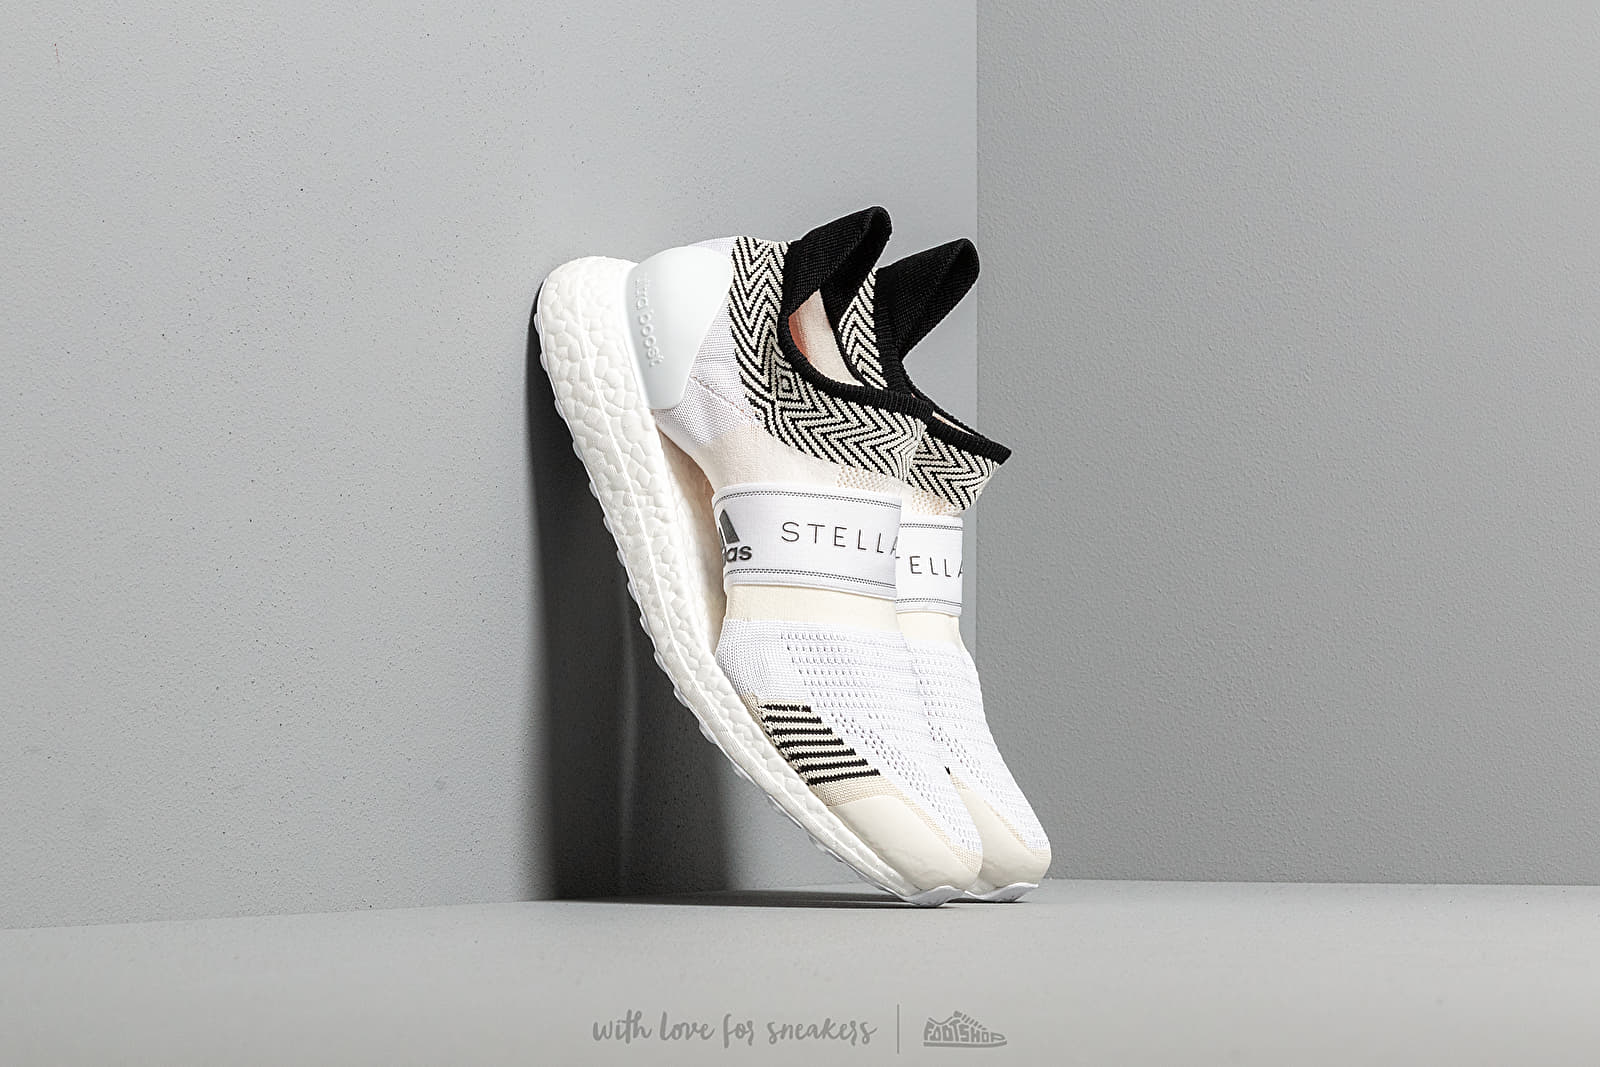 Nizke teniske adidas x Stella McCartney Ultraboost X 3.D. Chalk White/ Chalk White/ Radiate Orange